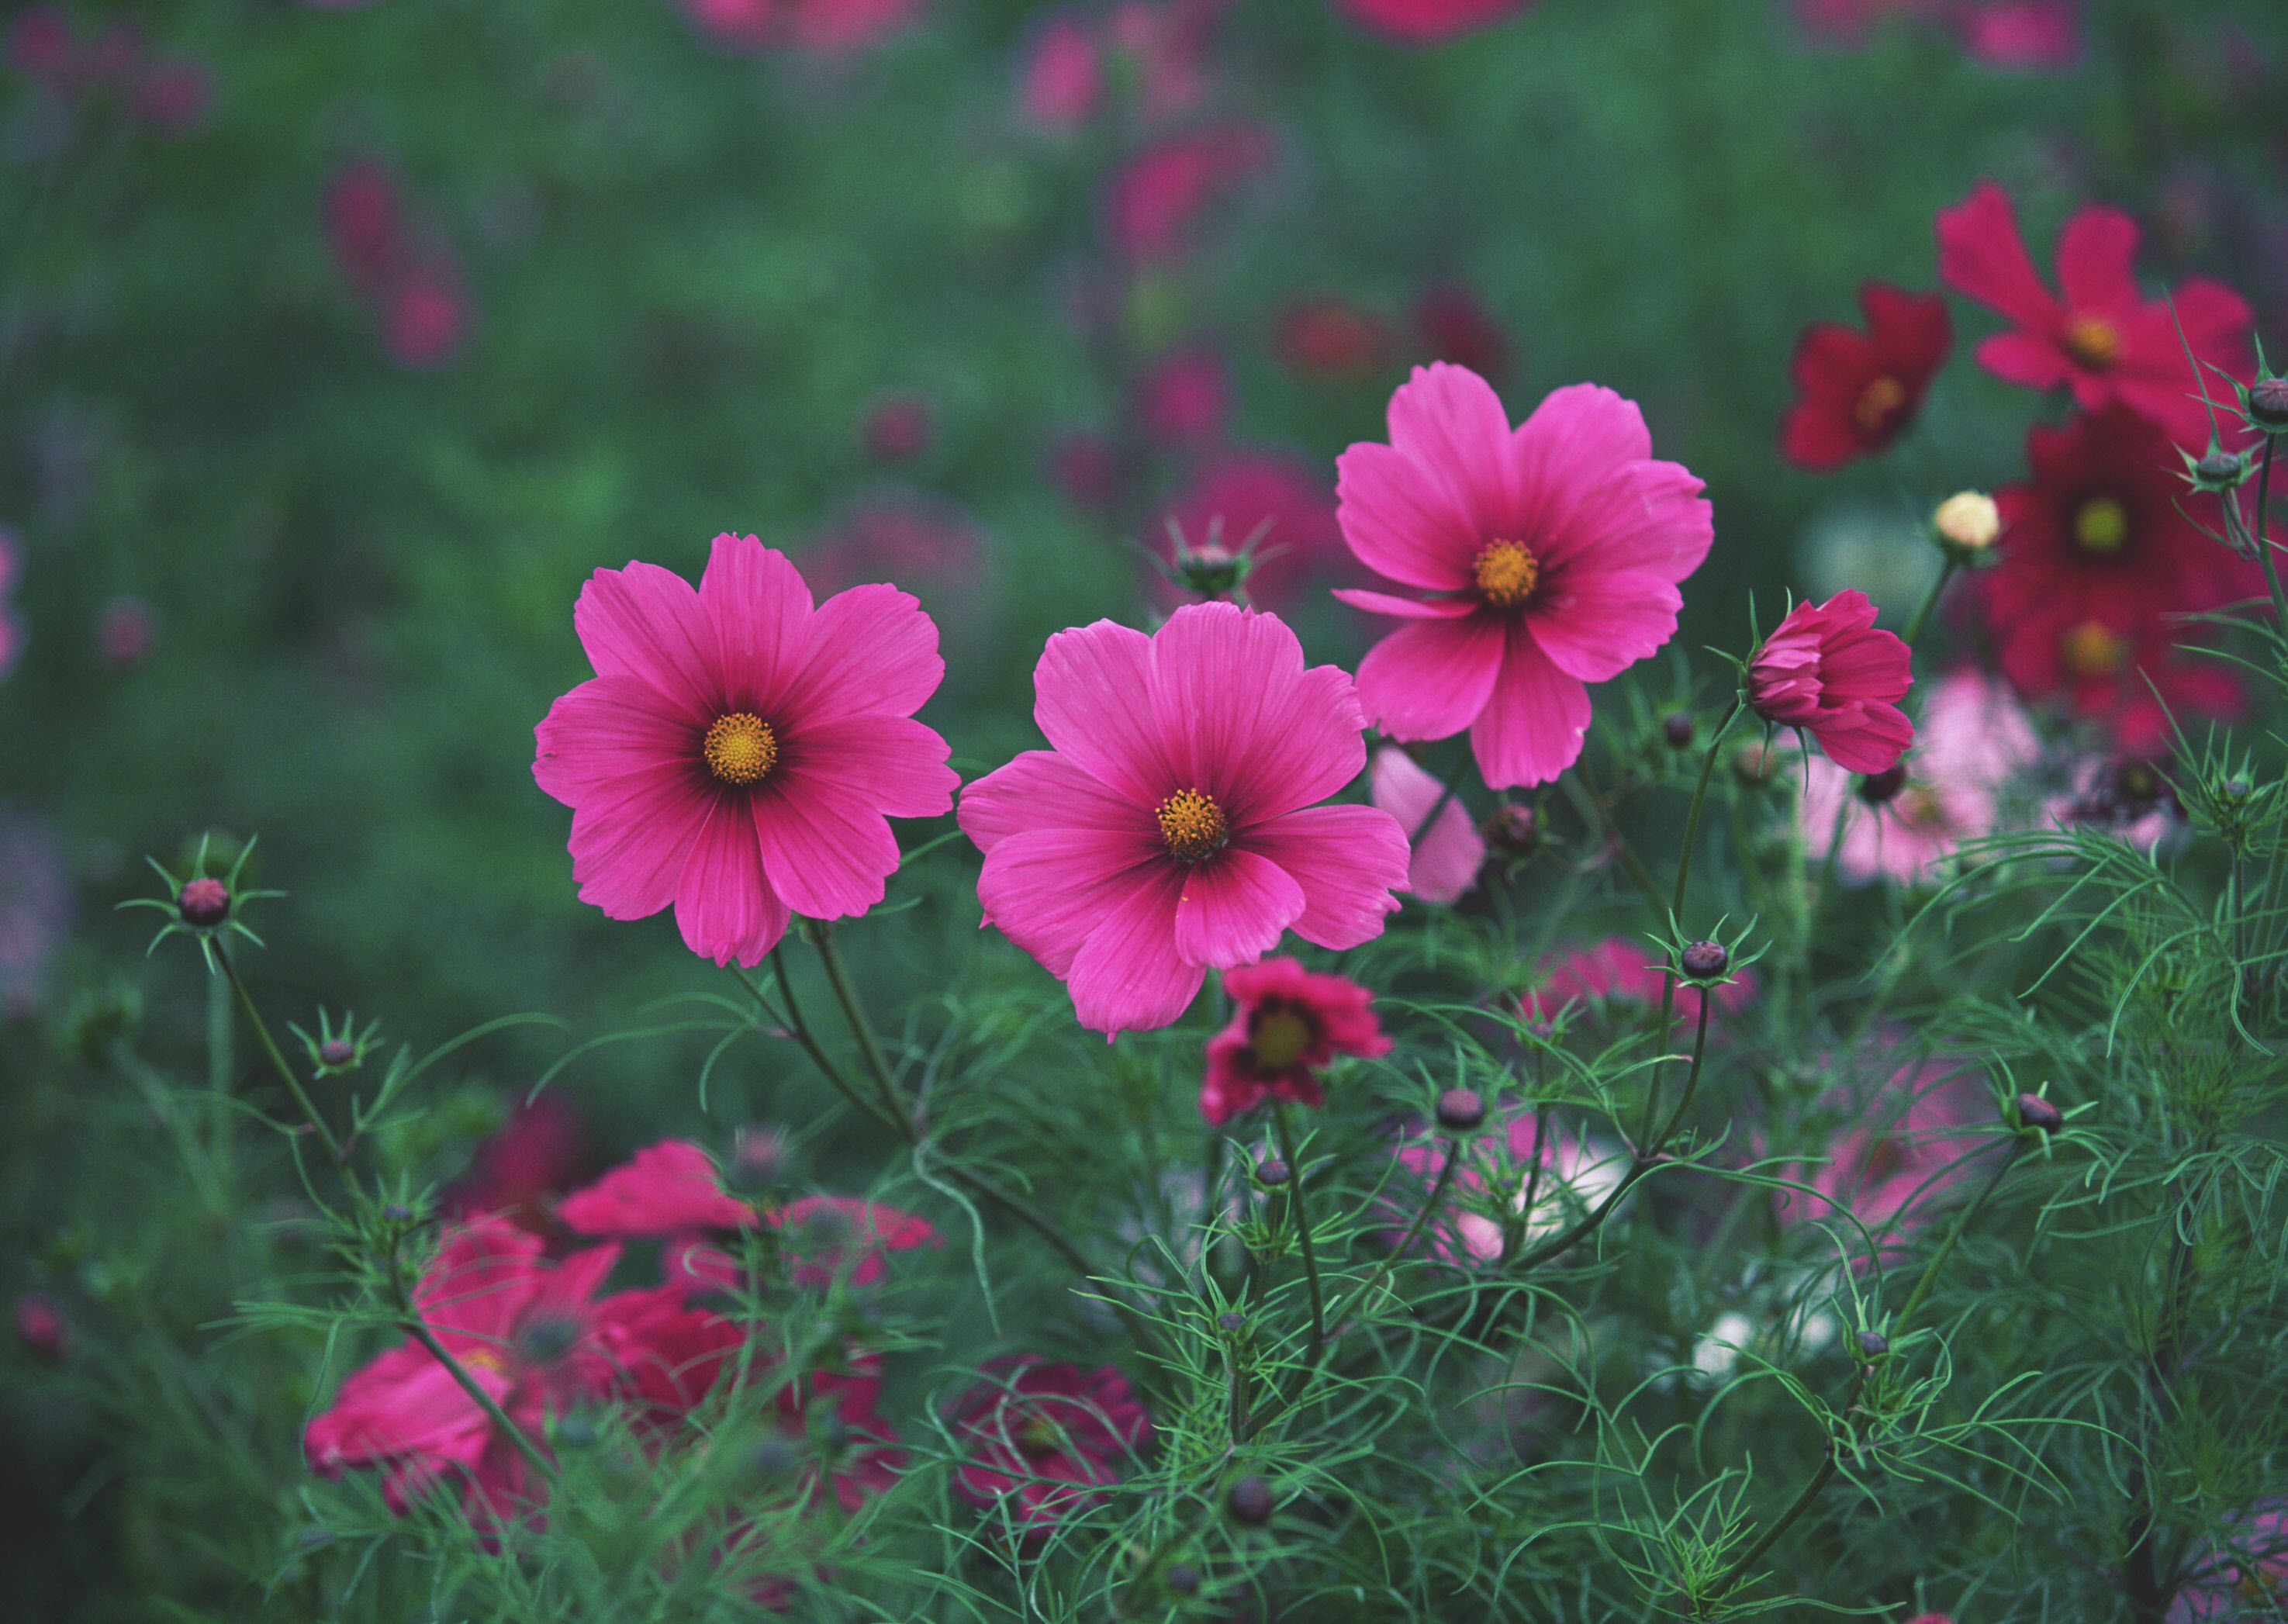 Nice Image Of Pink Flowers, Desktop Wallpaper Of Field